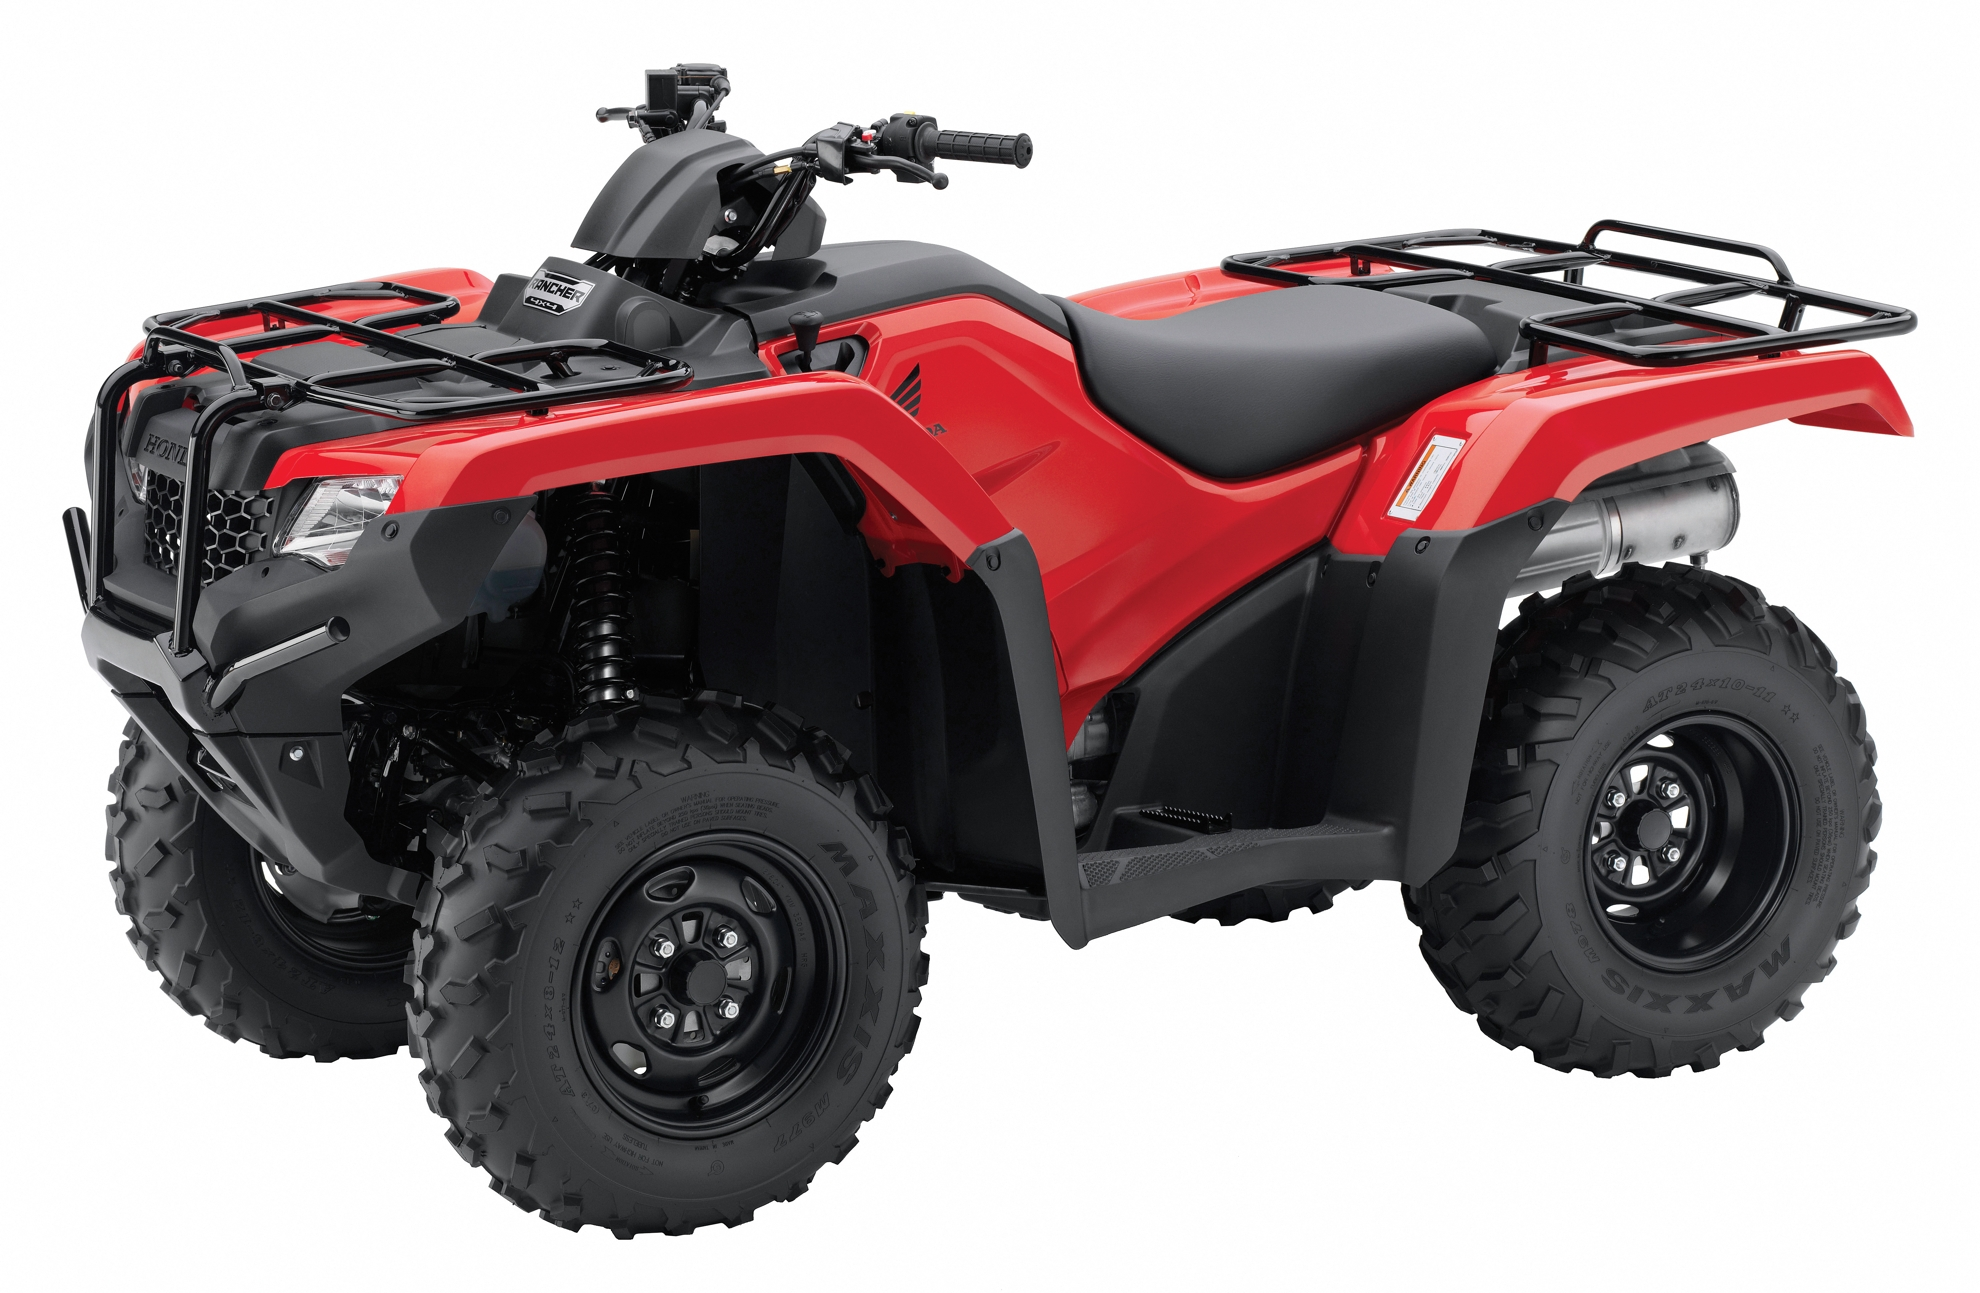 Honda Rancher 4x4 Red